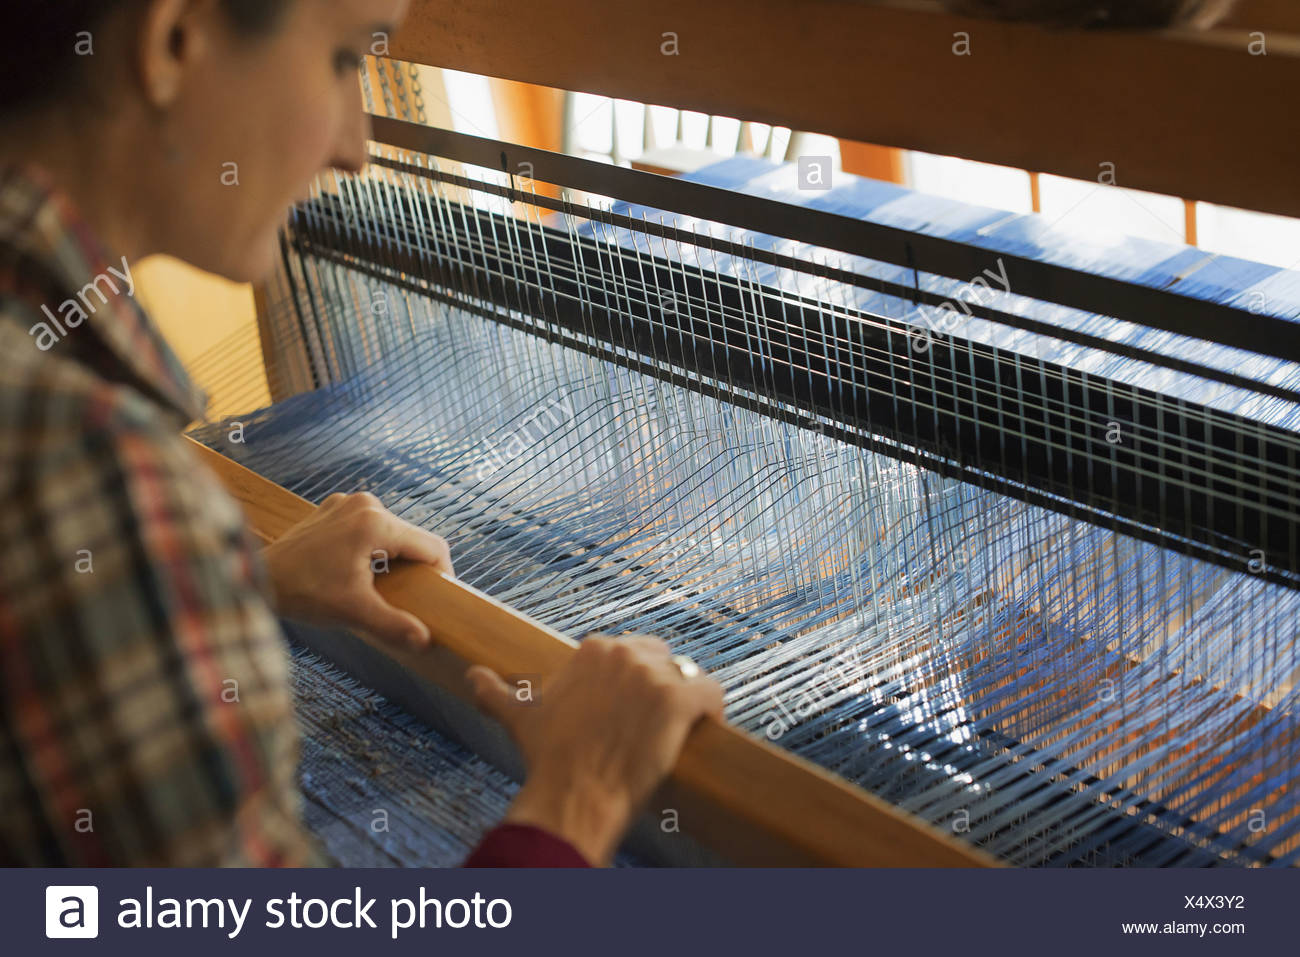 A woman seated at a wooden handloom creating a hand-woven woollen fabric with a blue and white pattern - Stock Image